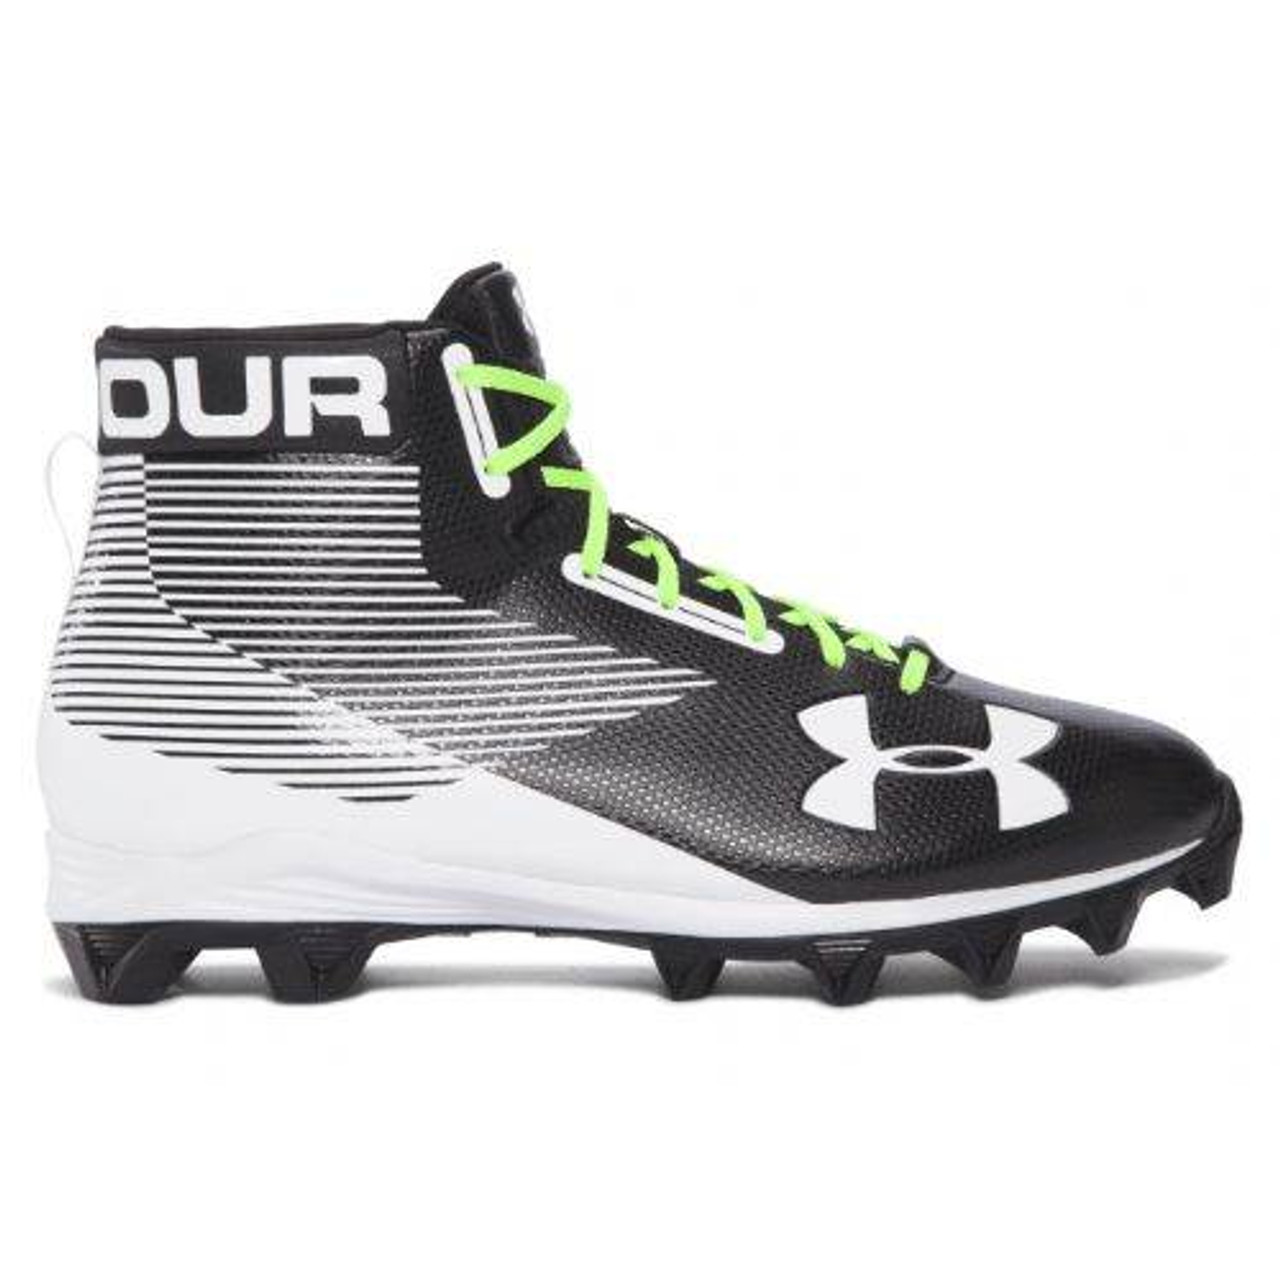 cheap youth football cleats